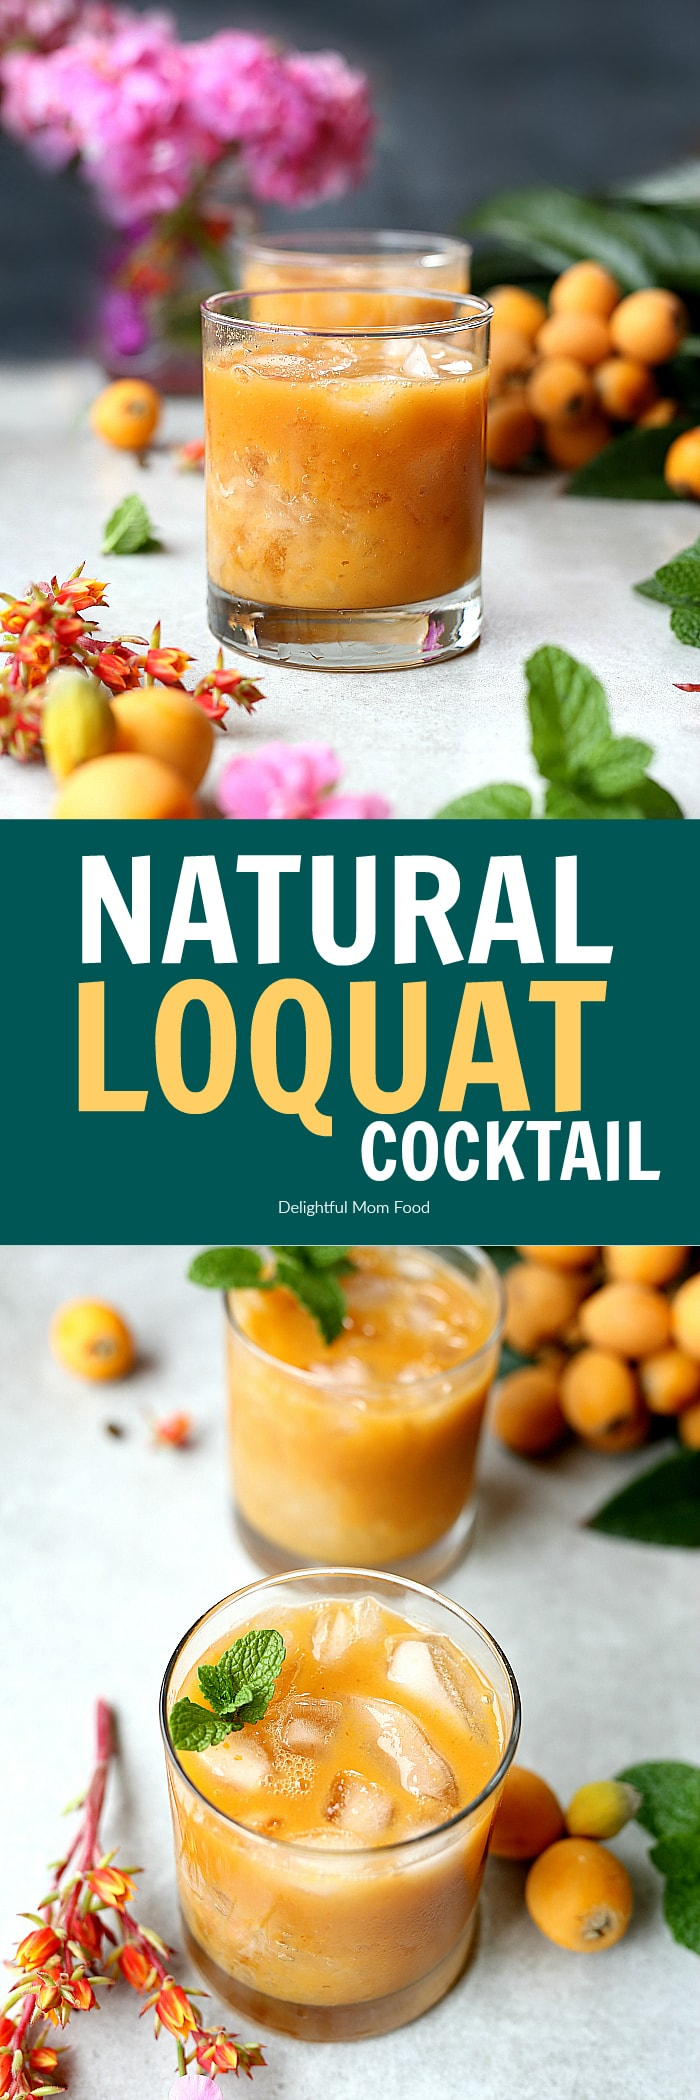 Fresh loquat cocktail recipe mixed in a blender and naturally made with tequila and a splash of sweet orange juice! #cocktail #drinks #recipe #loquat #tequila #glutenfree   Recipe at delightfulmomfood.com